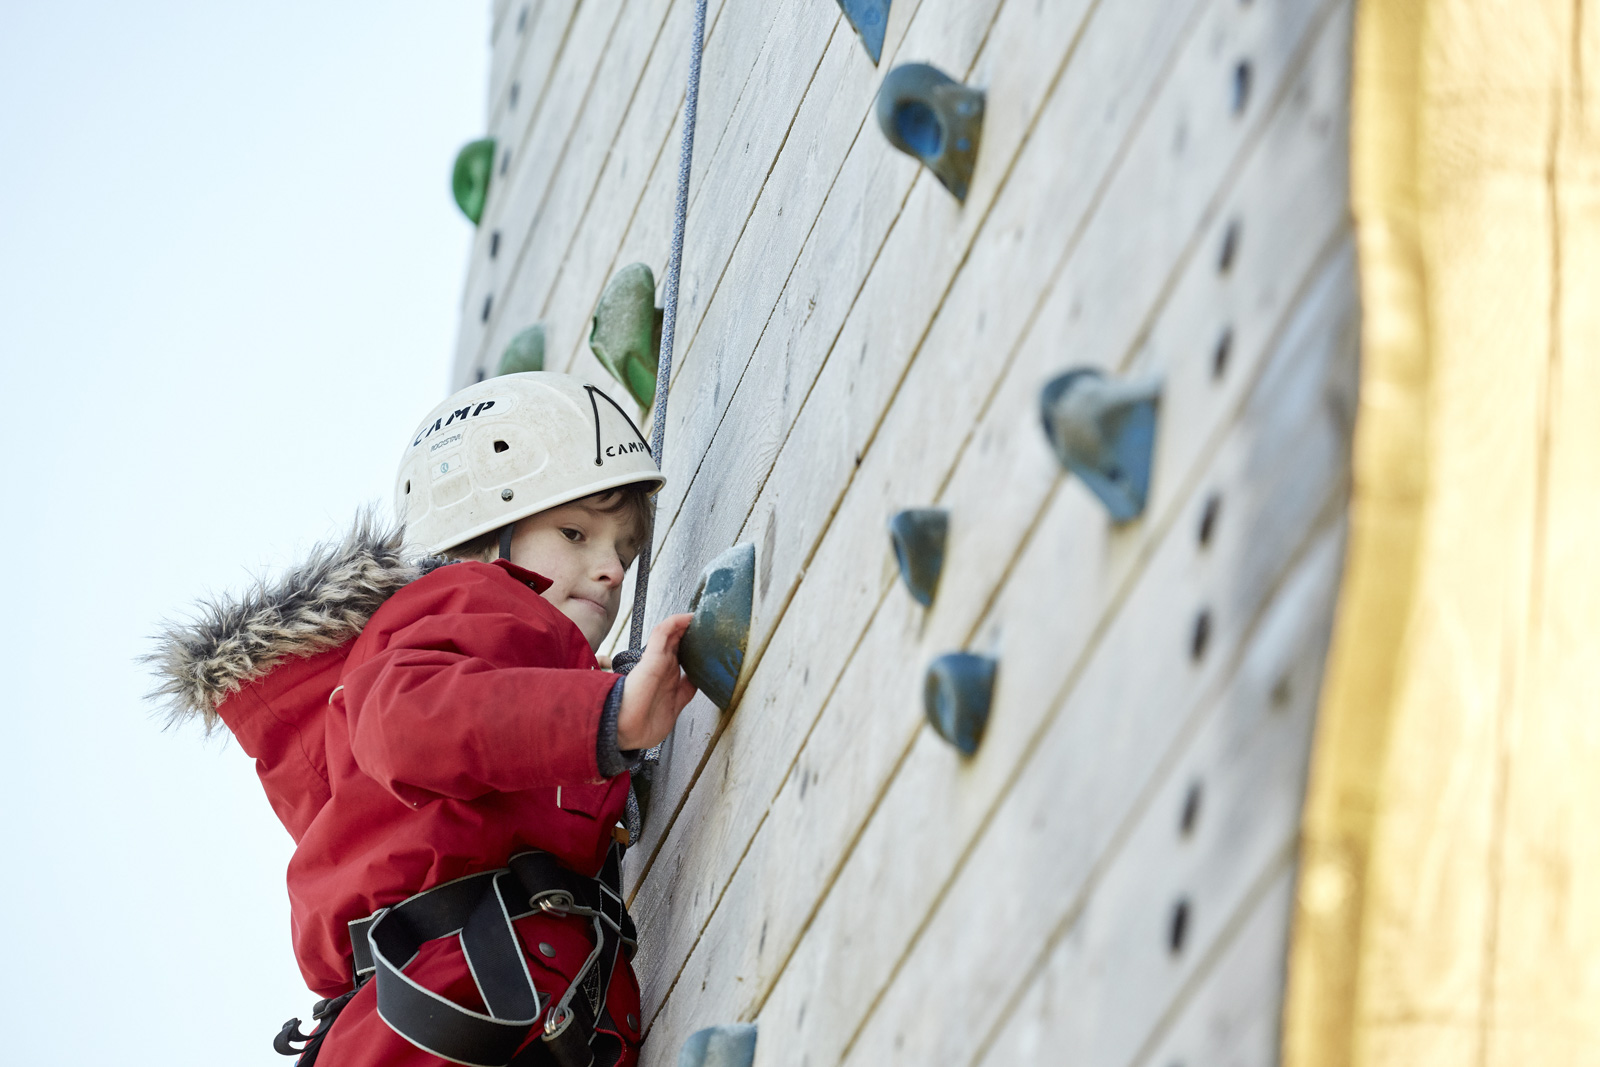 SCOUTS_WOODHOUSE_PARK_CLIMBING_073.jpg